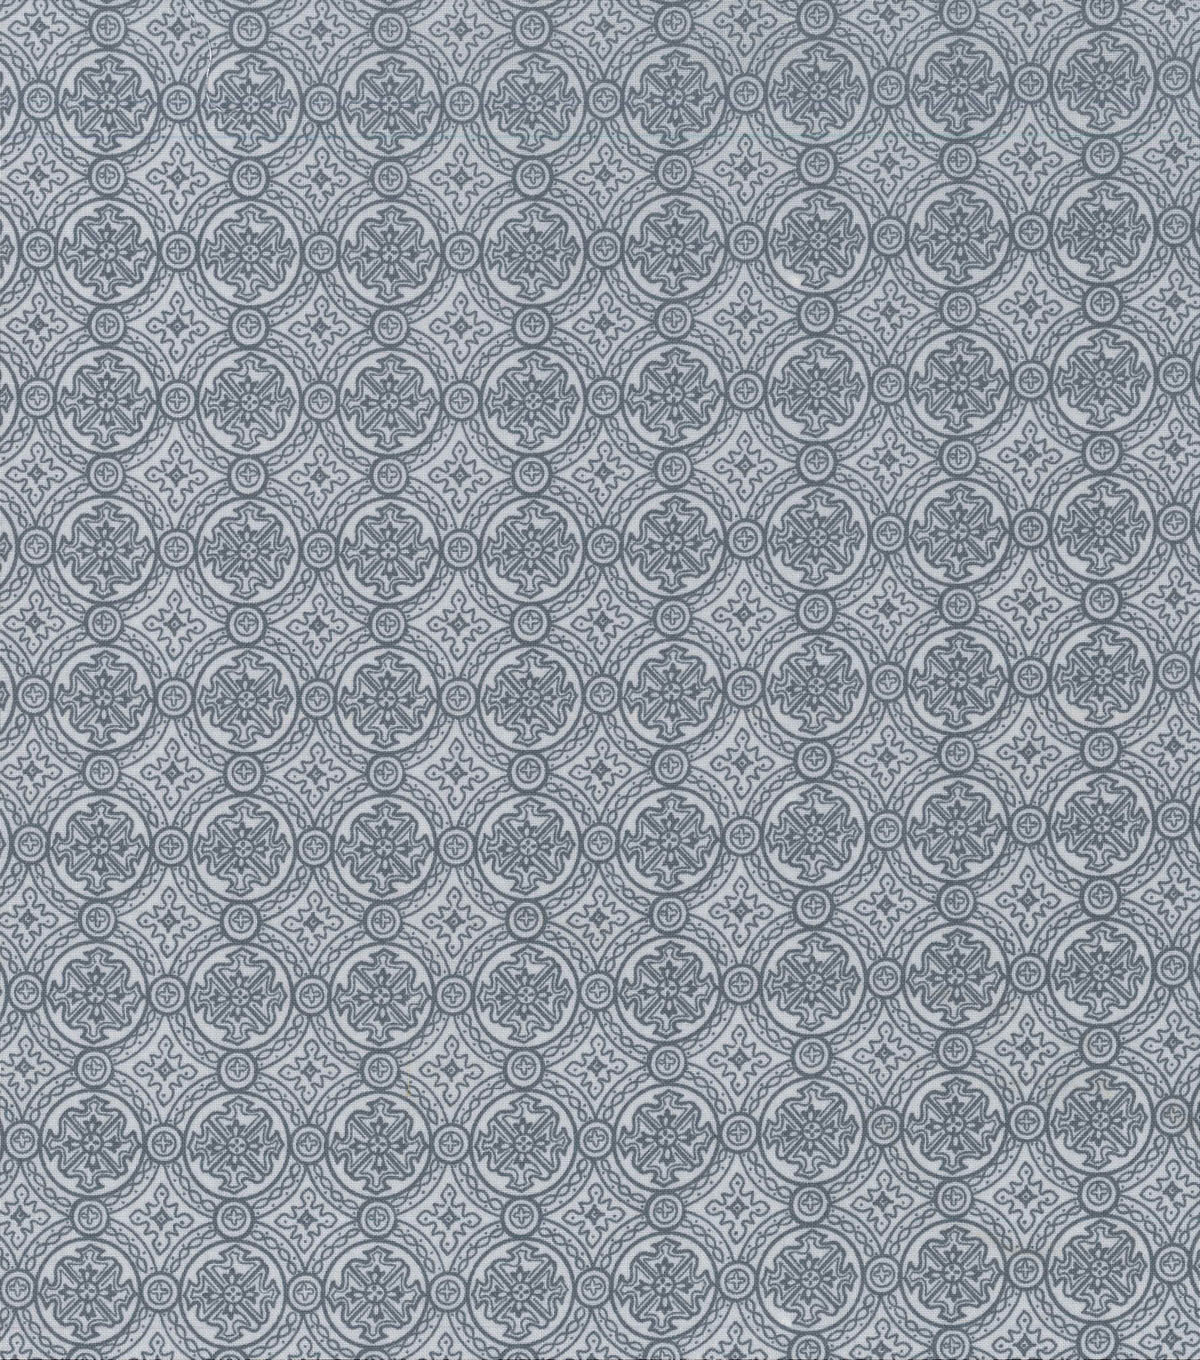 Keepsake Calico Cotton Fabric -Gray Small Medallion